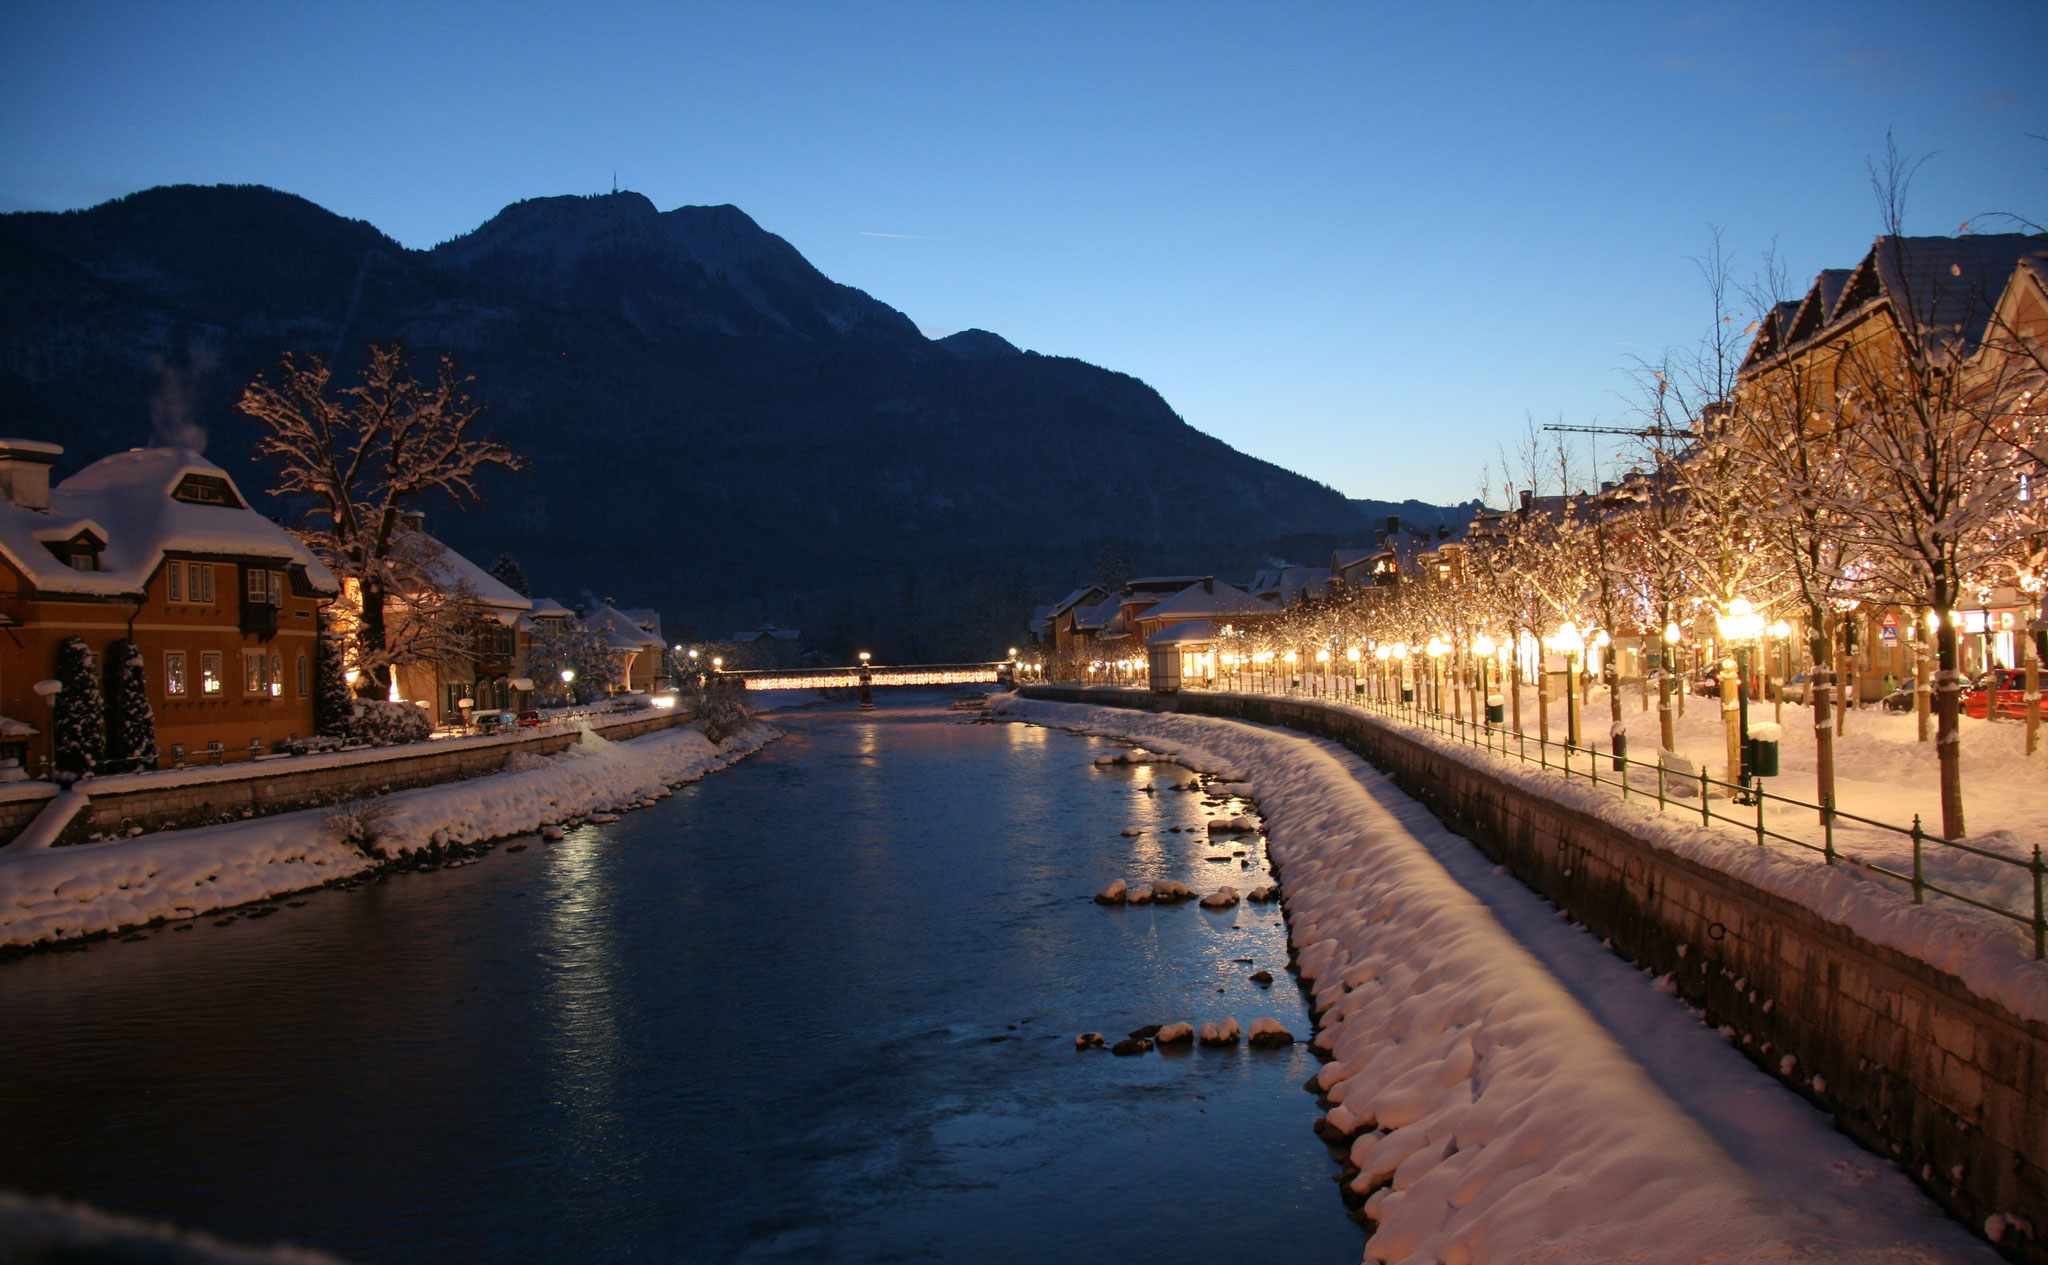 Bad Ischl at night